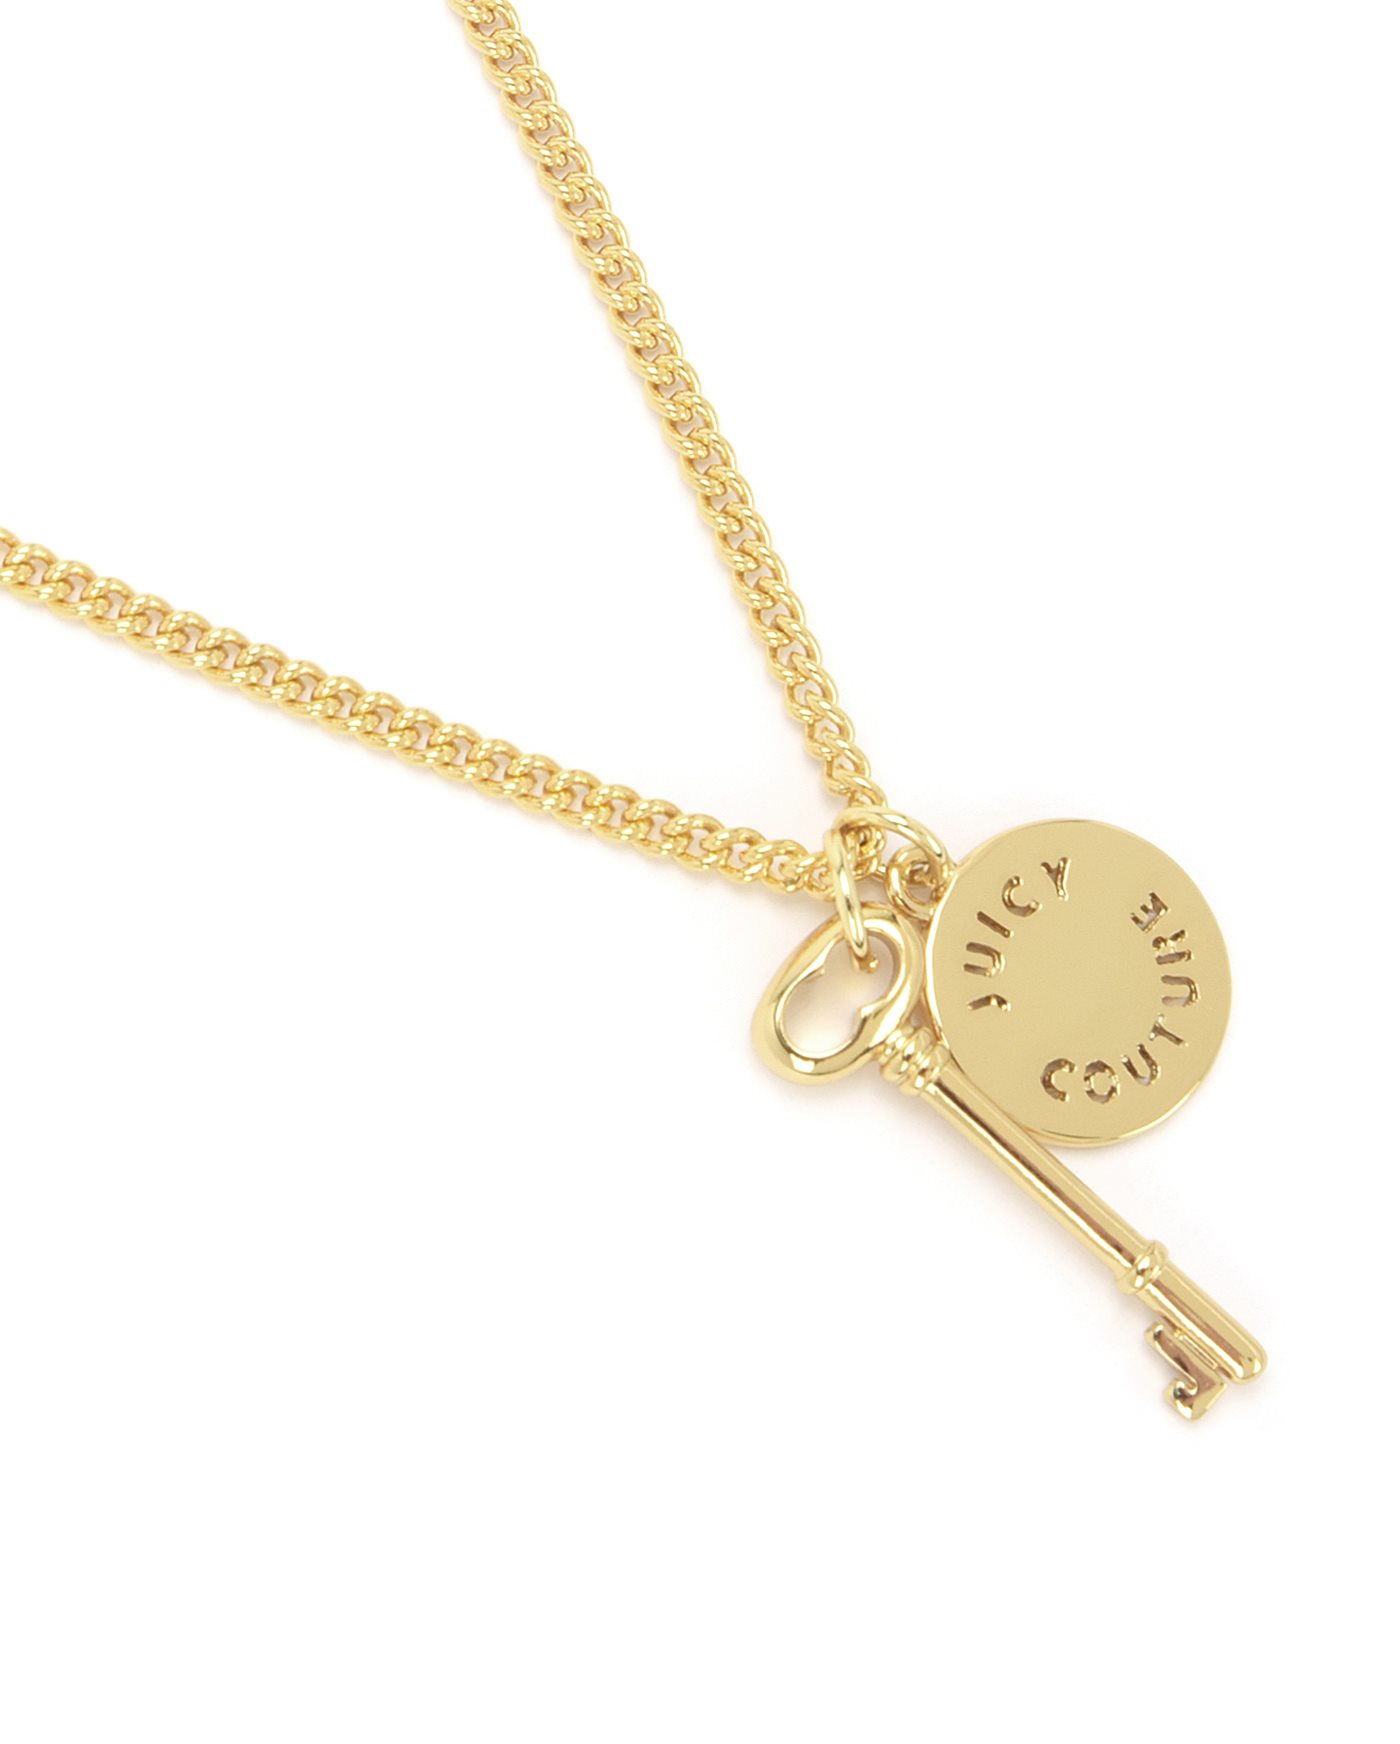 Juicy couture key and disc wish necklace in metallic lyst for Juicy couture jewelry necklace